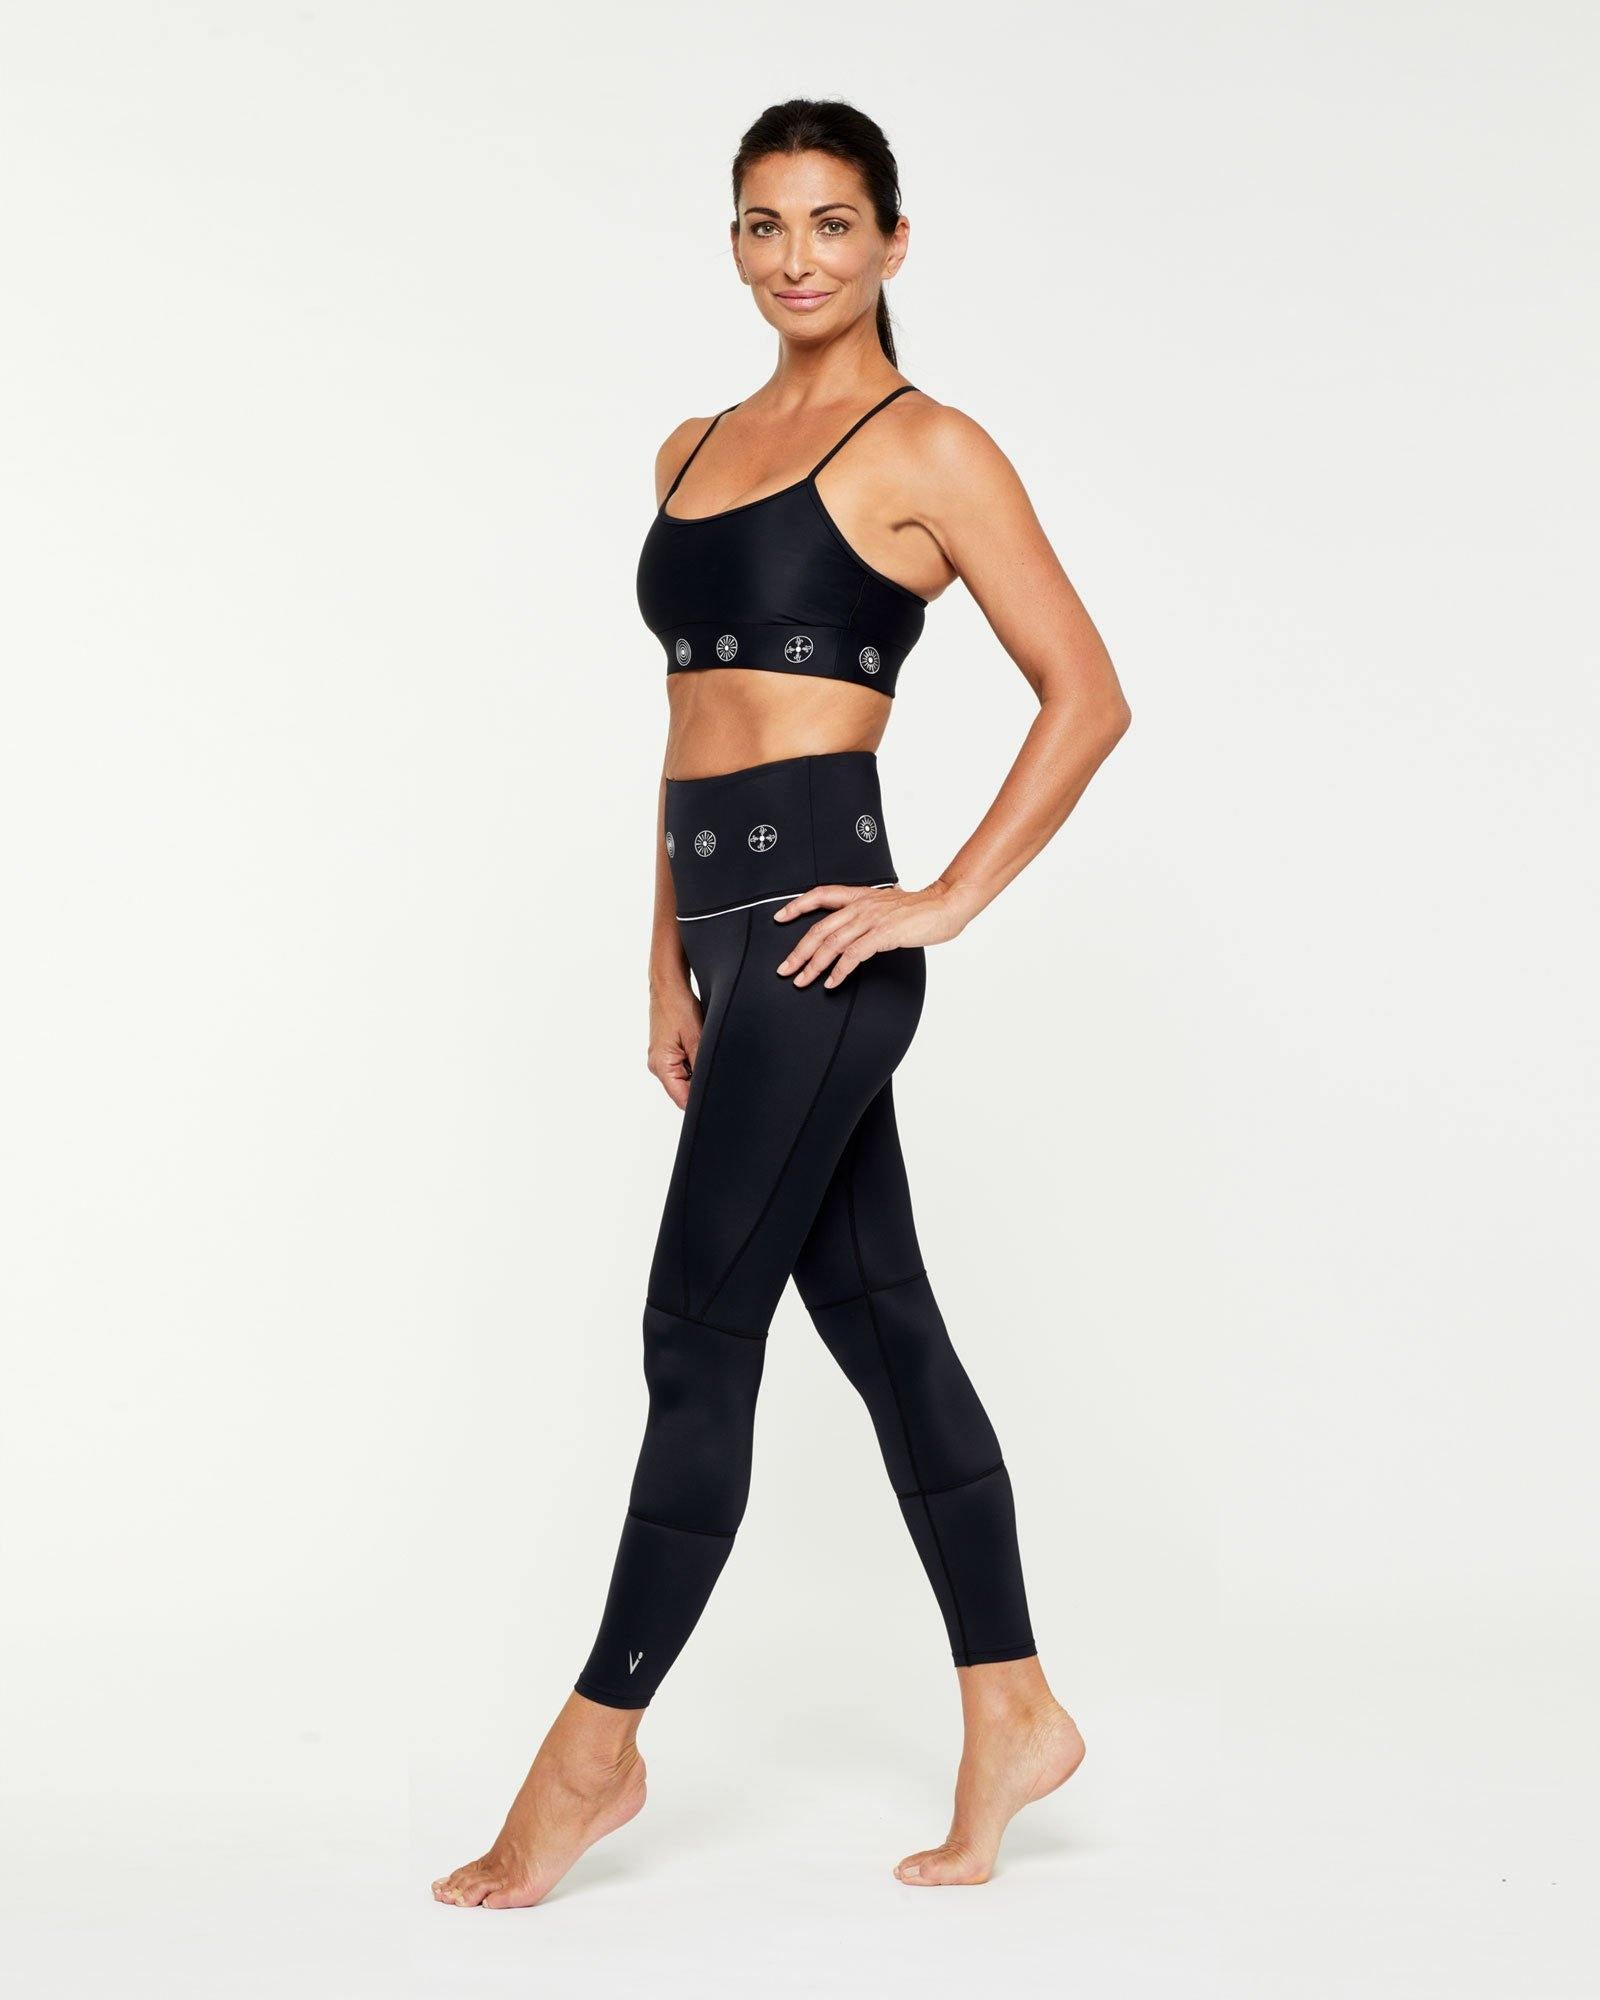 Companion Infraspinatus Bra top worn with GRACILIS 7/8 LENGTH LEGGING BLACK WITH WHITE SYMBOLS, SIDE VIEW